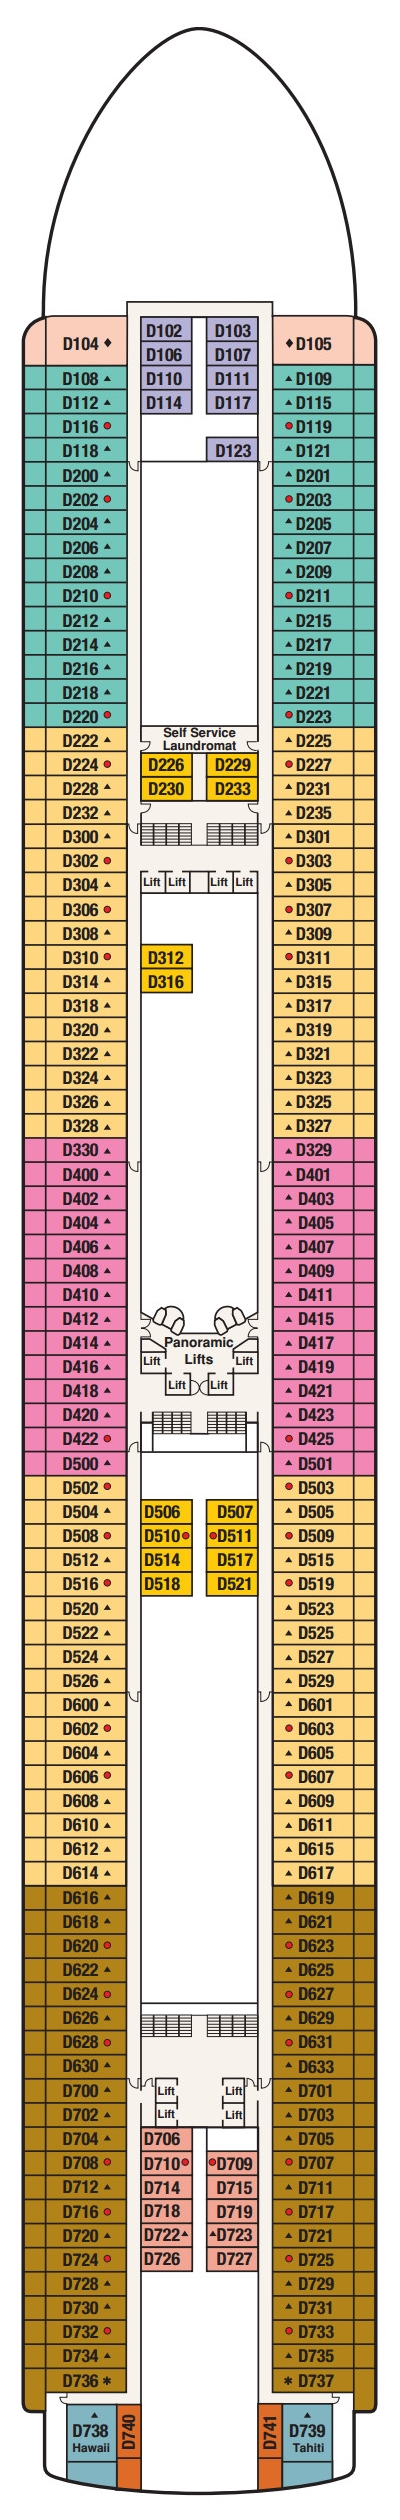 Diamond Princess Dolphin Deck 9 layout